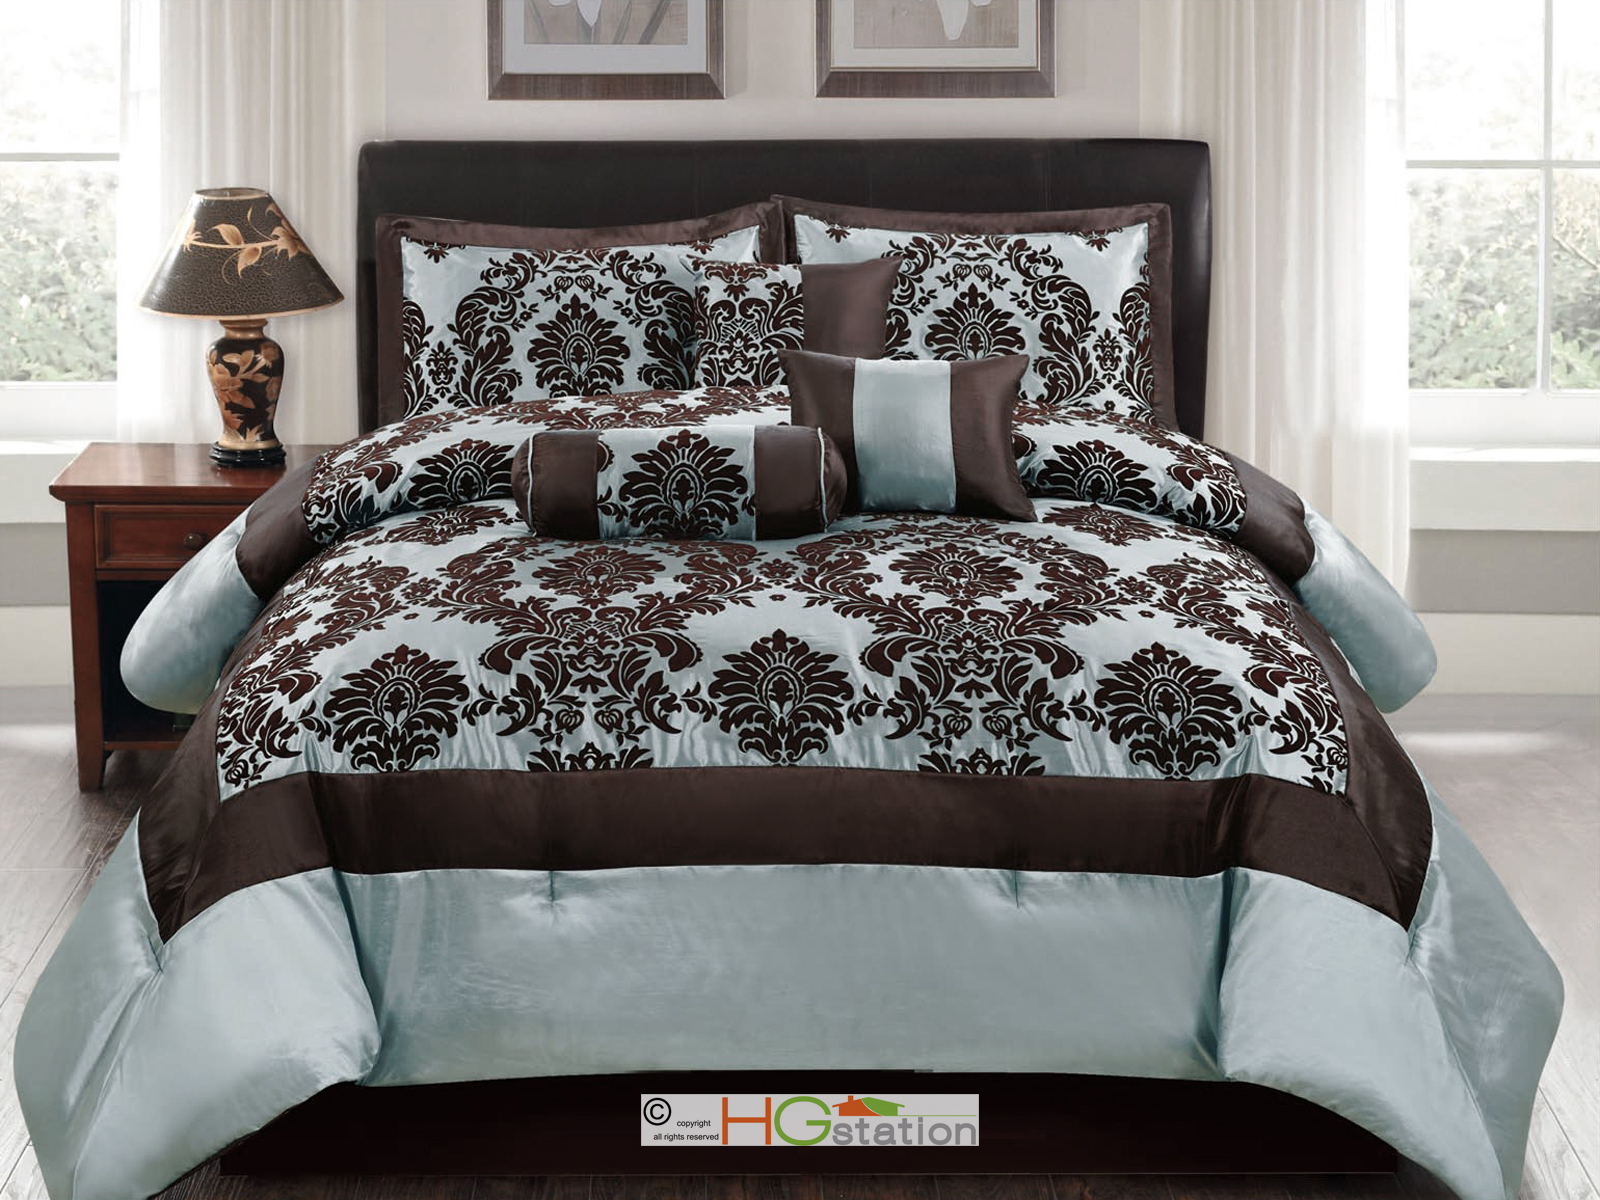 7 Pc Silky Poly Satin Flocking Damask Floral Square Comforter Set Blue Brown  Queen